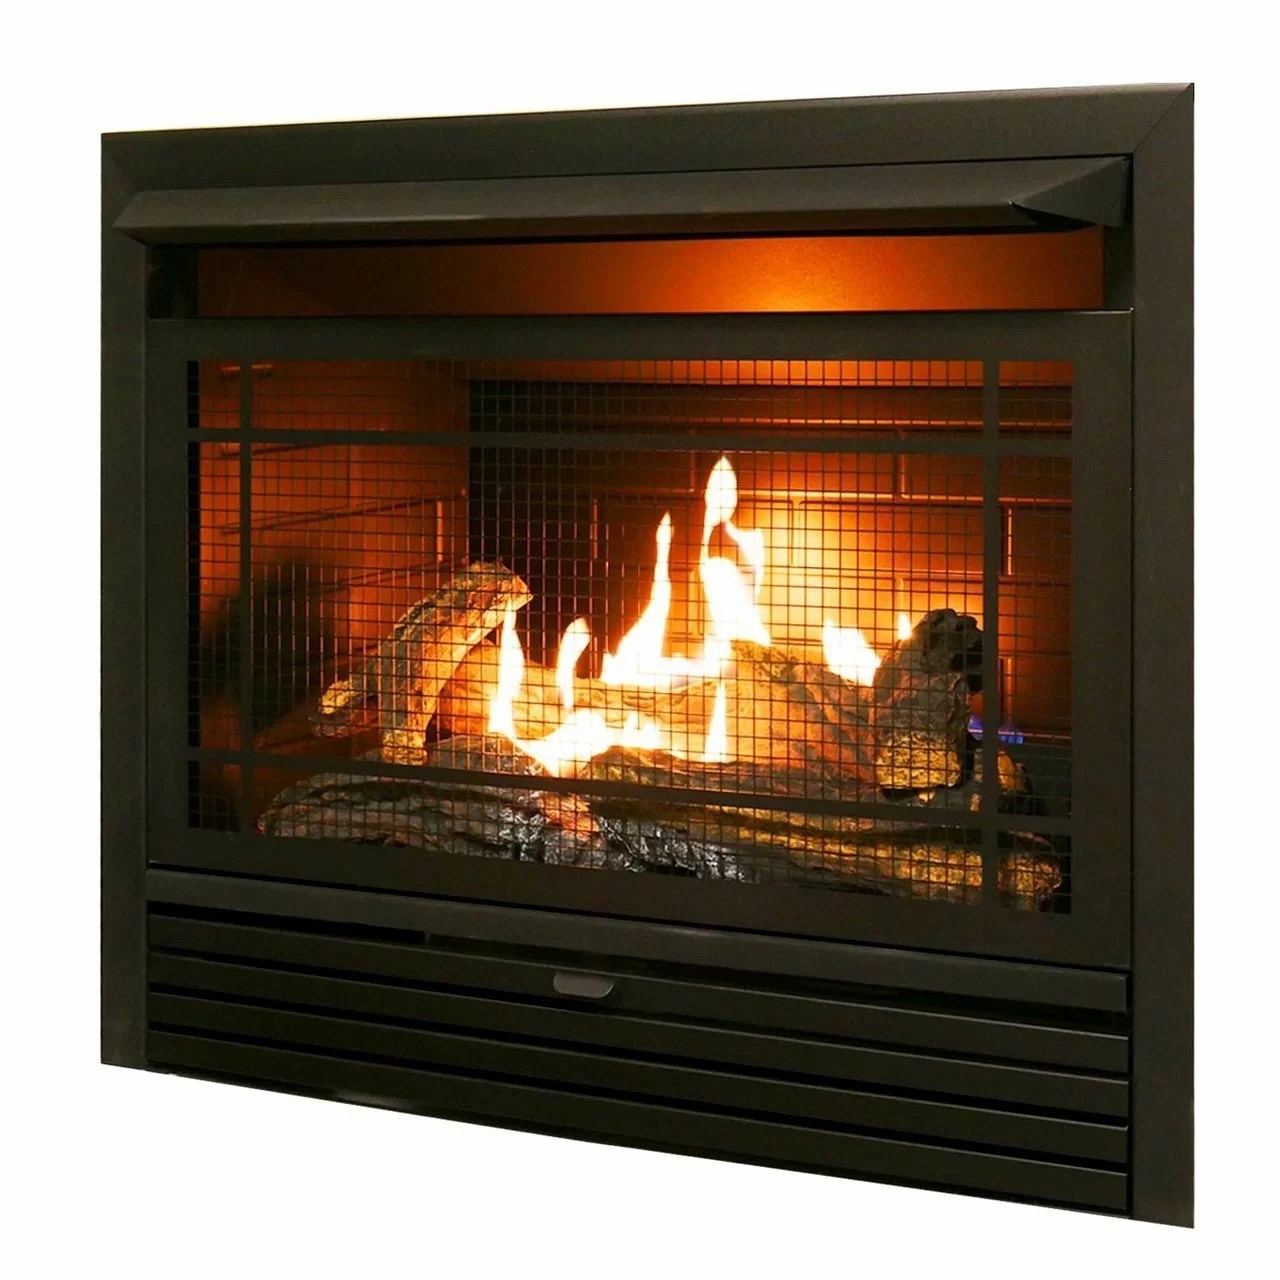 Gas Fireplace Faq Hardwick Vent Free Recessed Natural Gas Propane Fireplace Insert